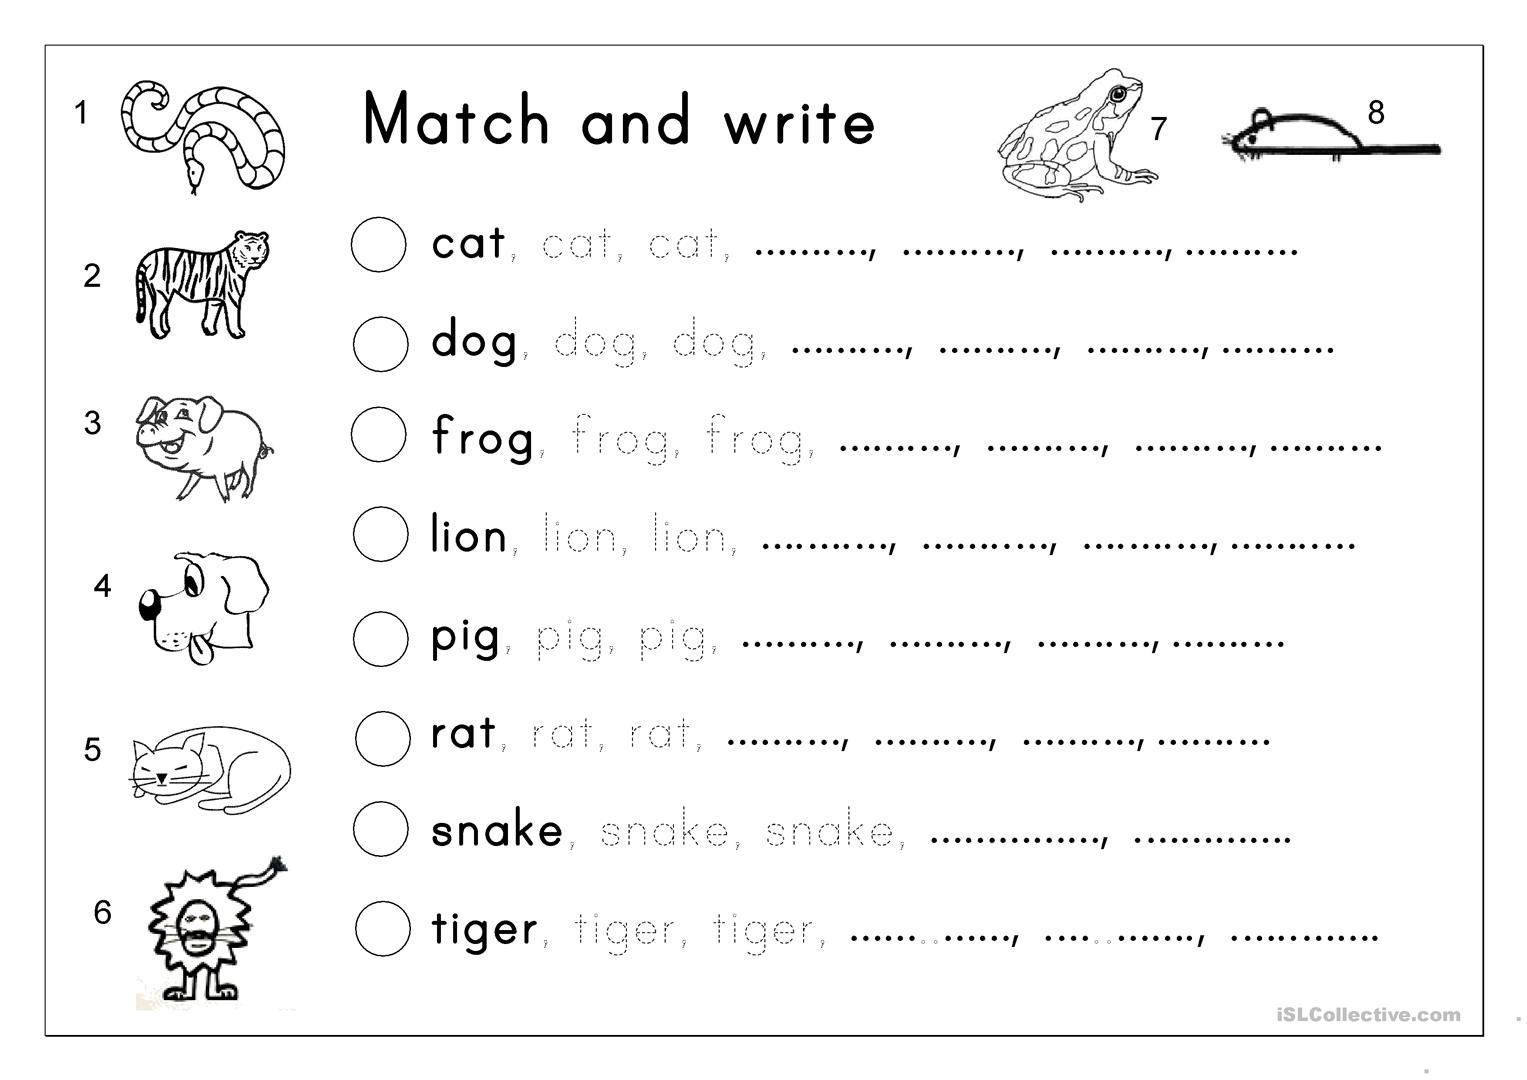 Matching, Letter Tracing, Writing - Animals - English Esl regarding Letter Tracing Worksheets For Adults